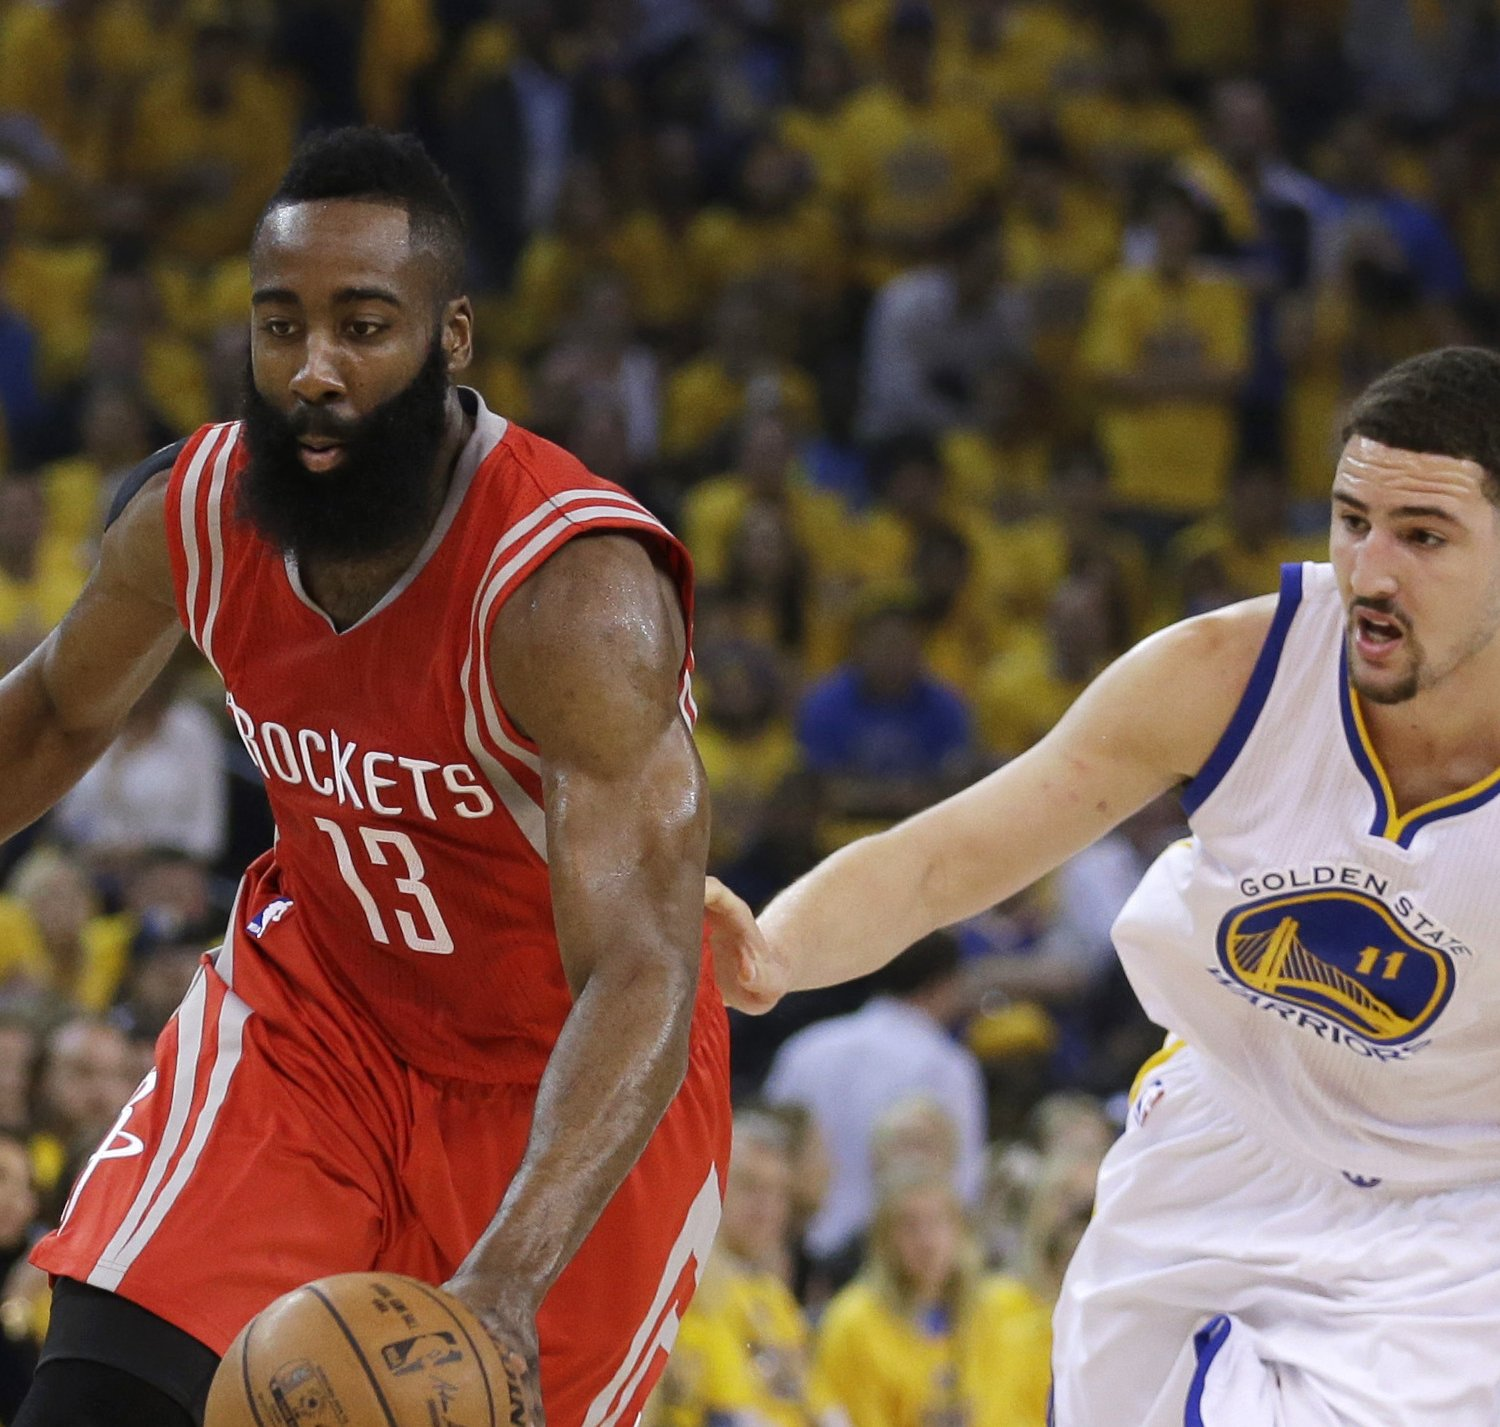 Rockets And The Warriors Game: Houston Rockets Vs. Golden State Warriors: Game 2 Odds